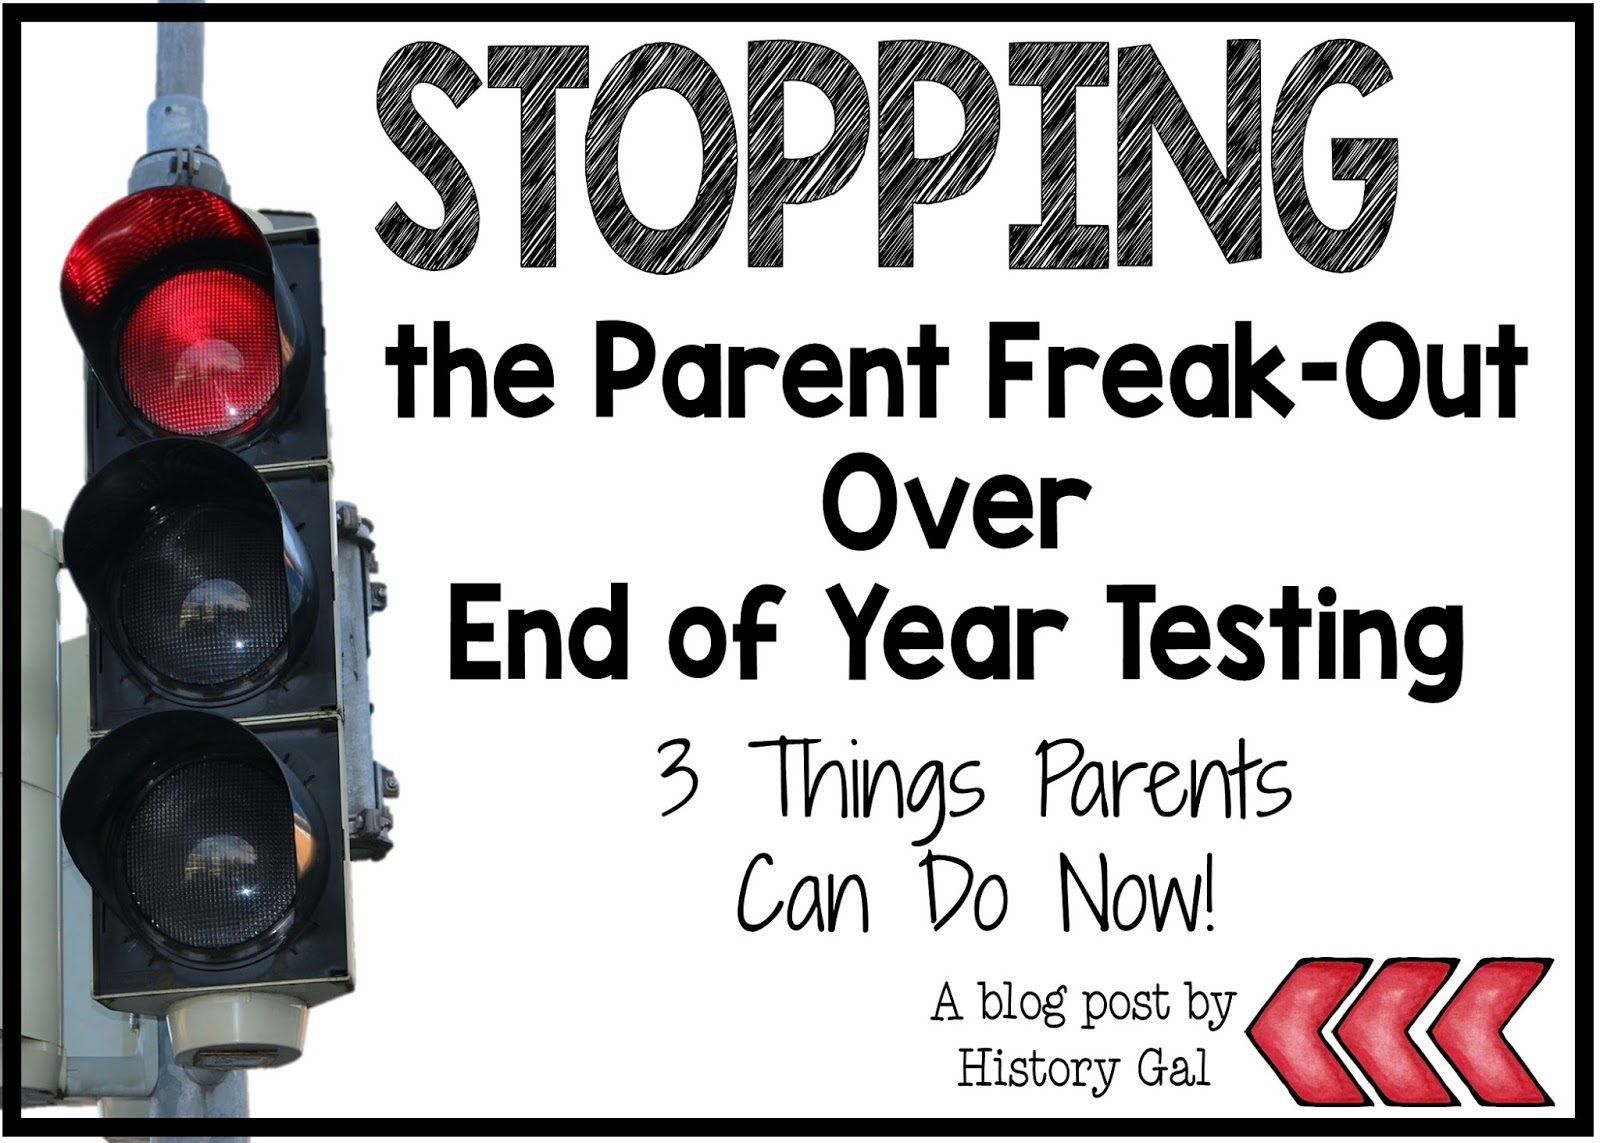 Let's Stop the Parent Freak-out About End of Year Tests By History Gal